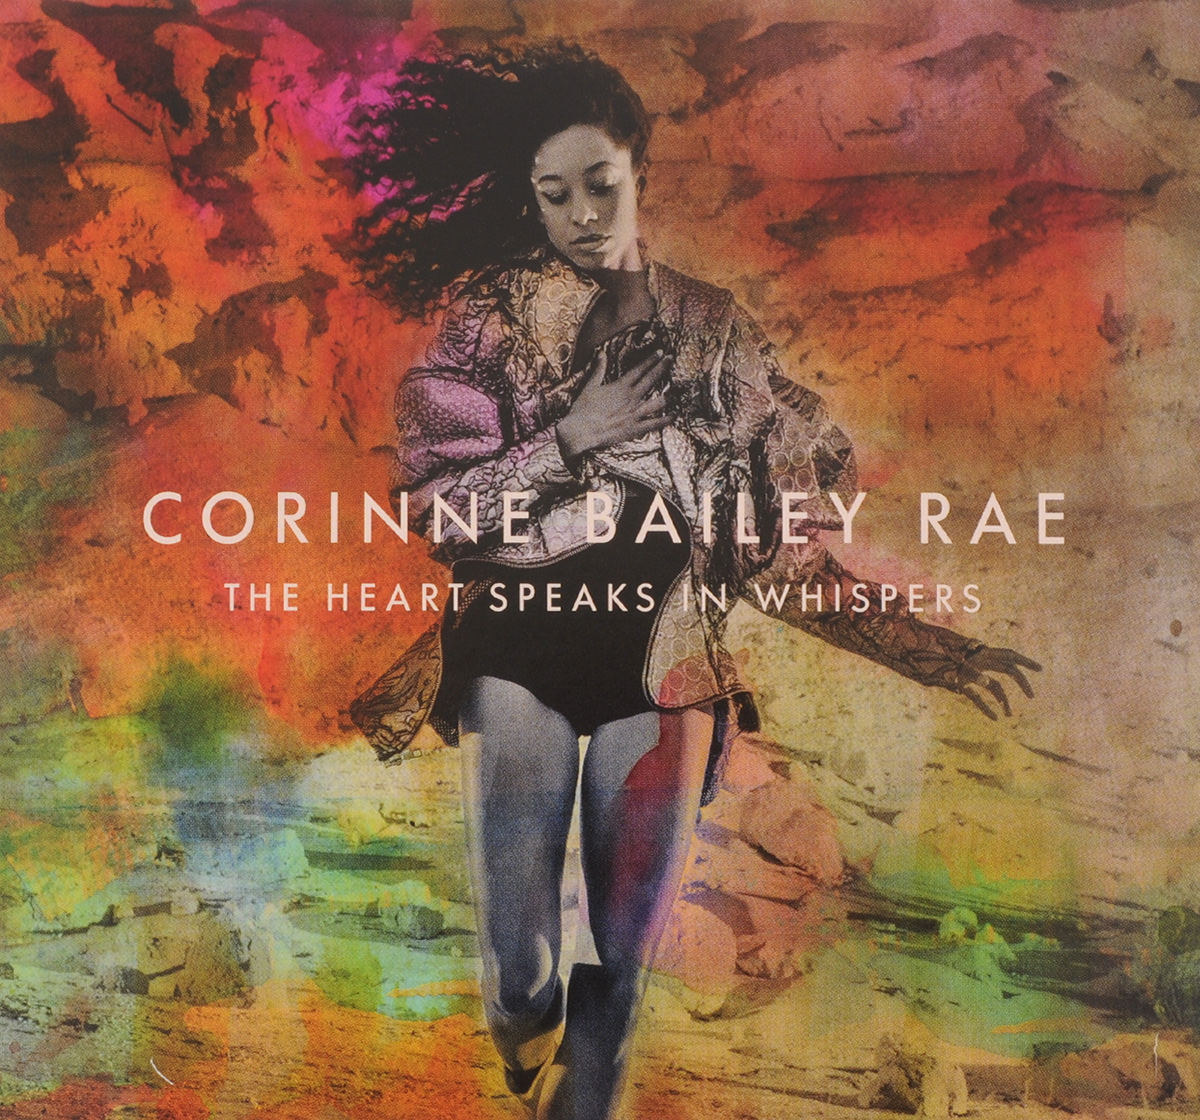 Коринн Бэйли Рэй Corinne Bailey Rae. The Heart Speaks In Whispers (CD) nina rae springfields the power of hope